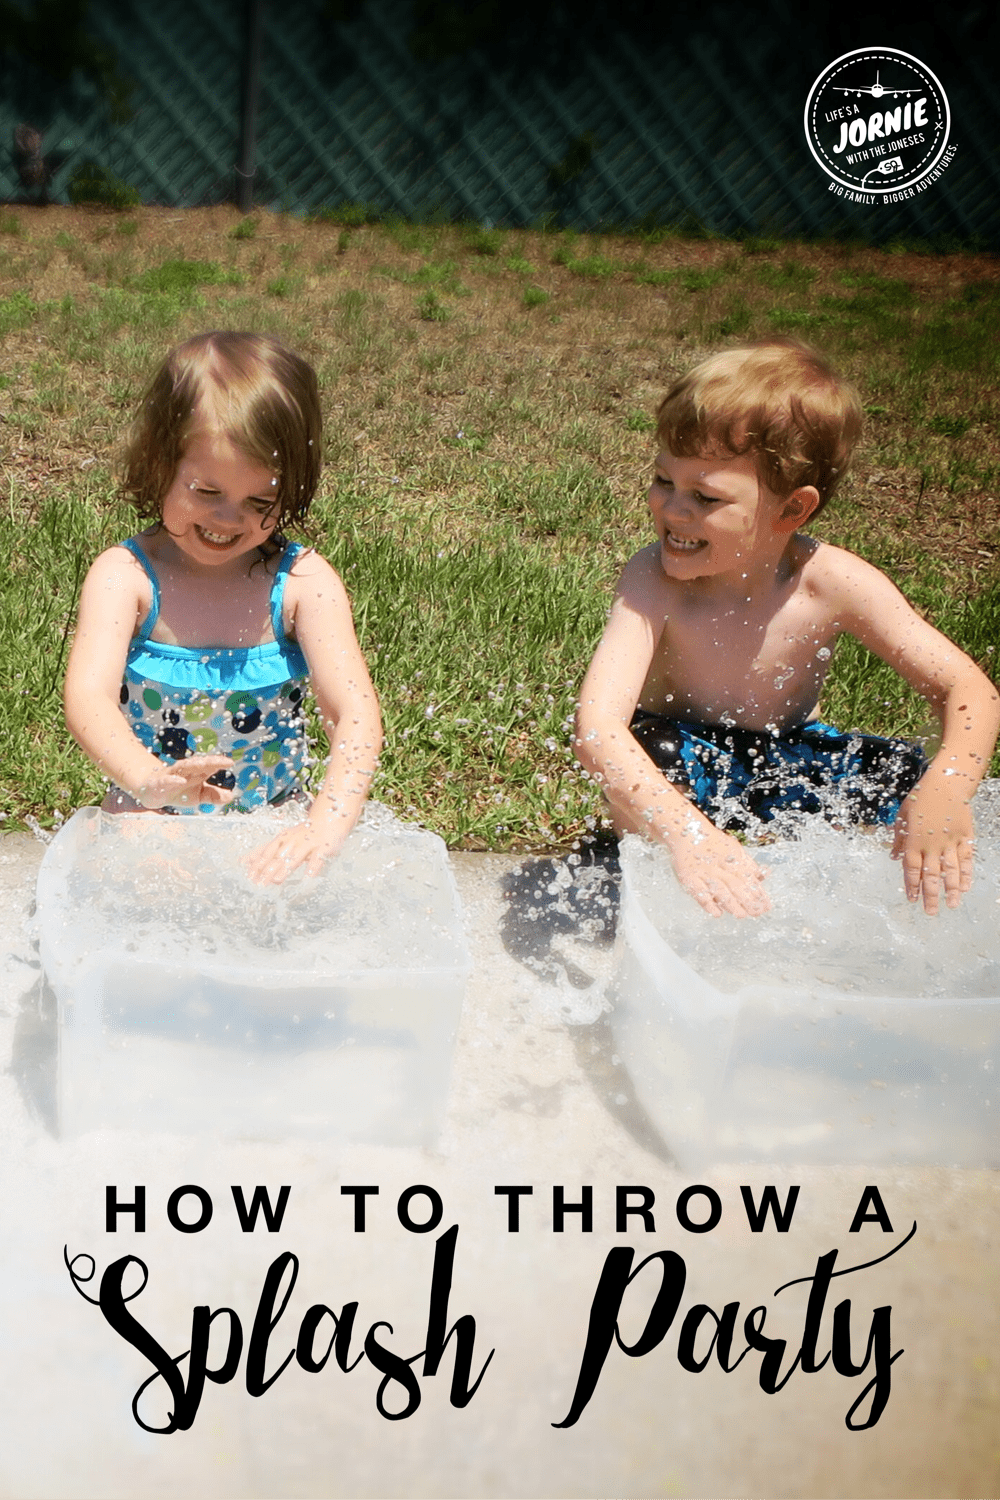 How to throw a SPLASH PARTY!